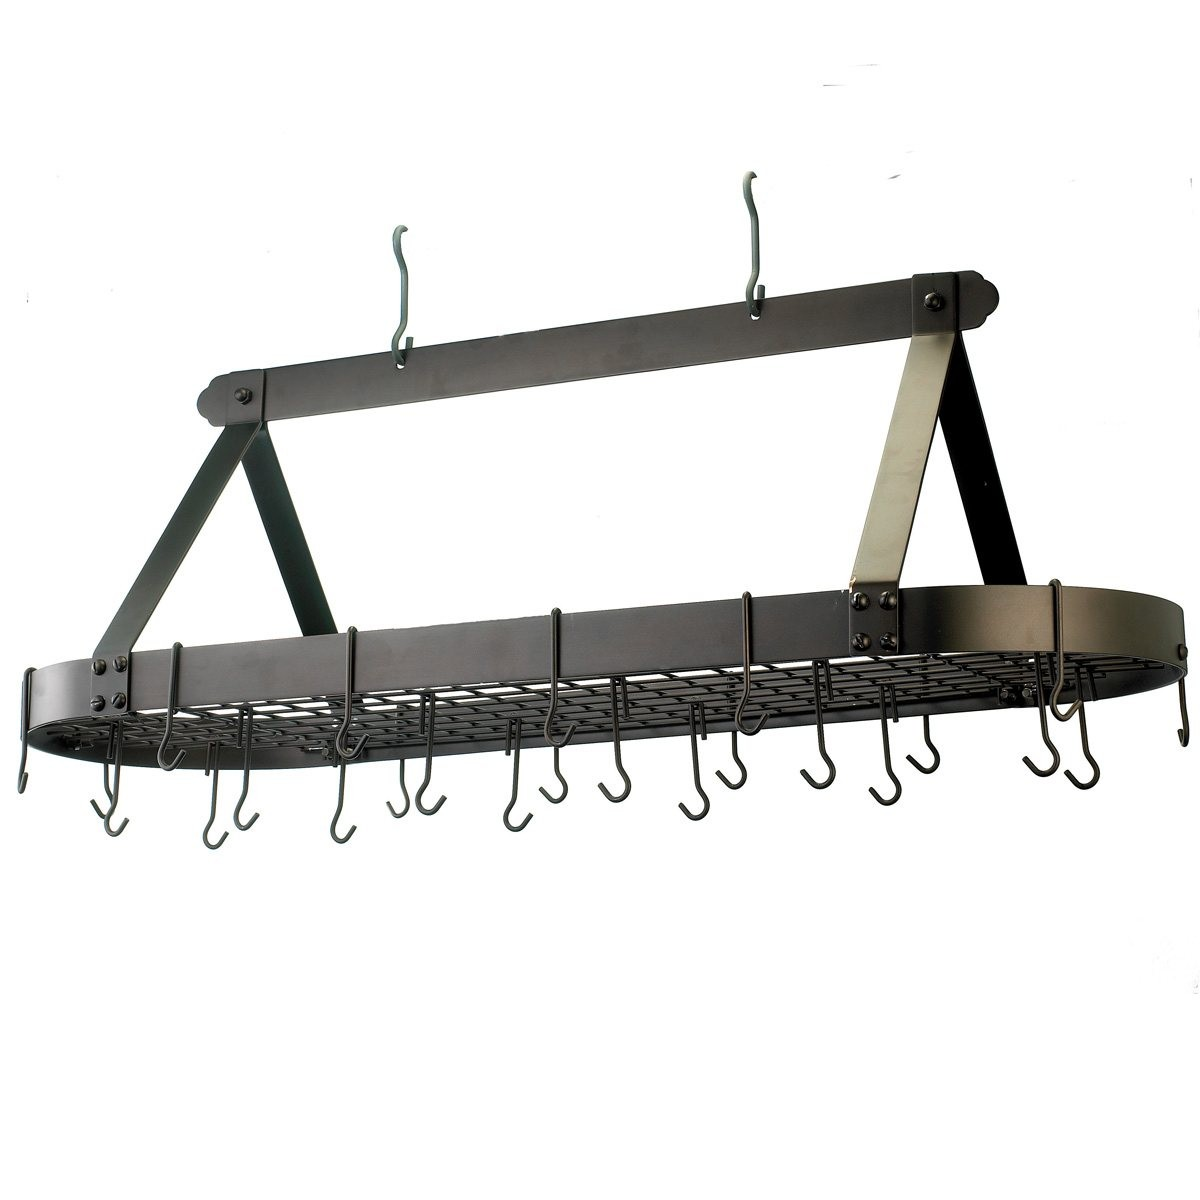 "Old Dutch International 109BZ Oval Oiled Bronze Pot Rack, 24 Hooks, 48"" x 19"" x 15 1/2"""